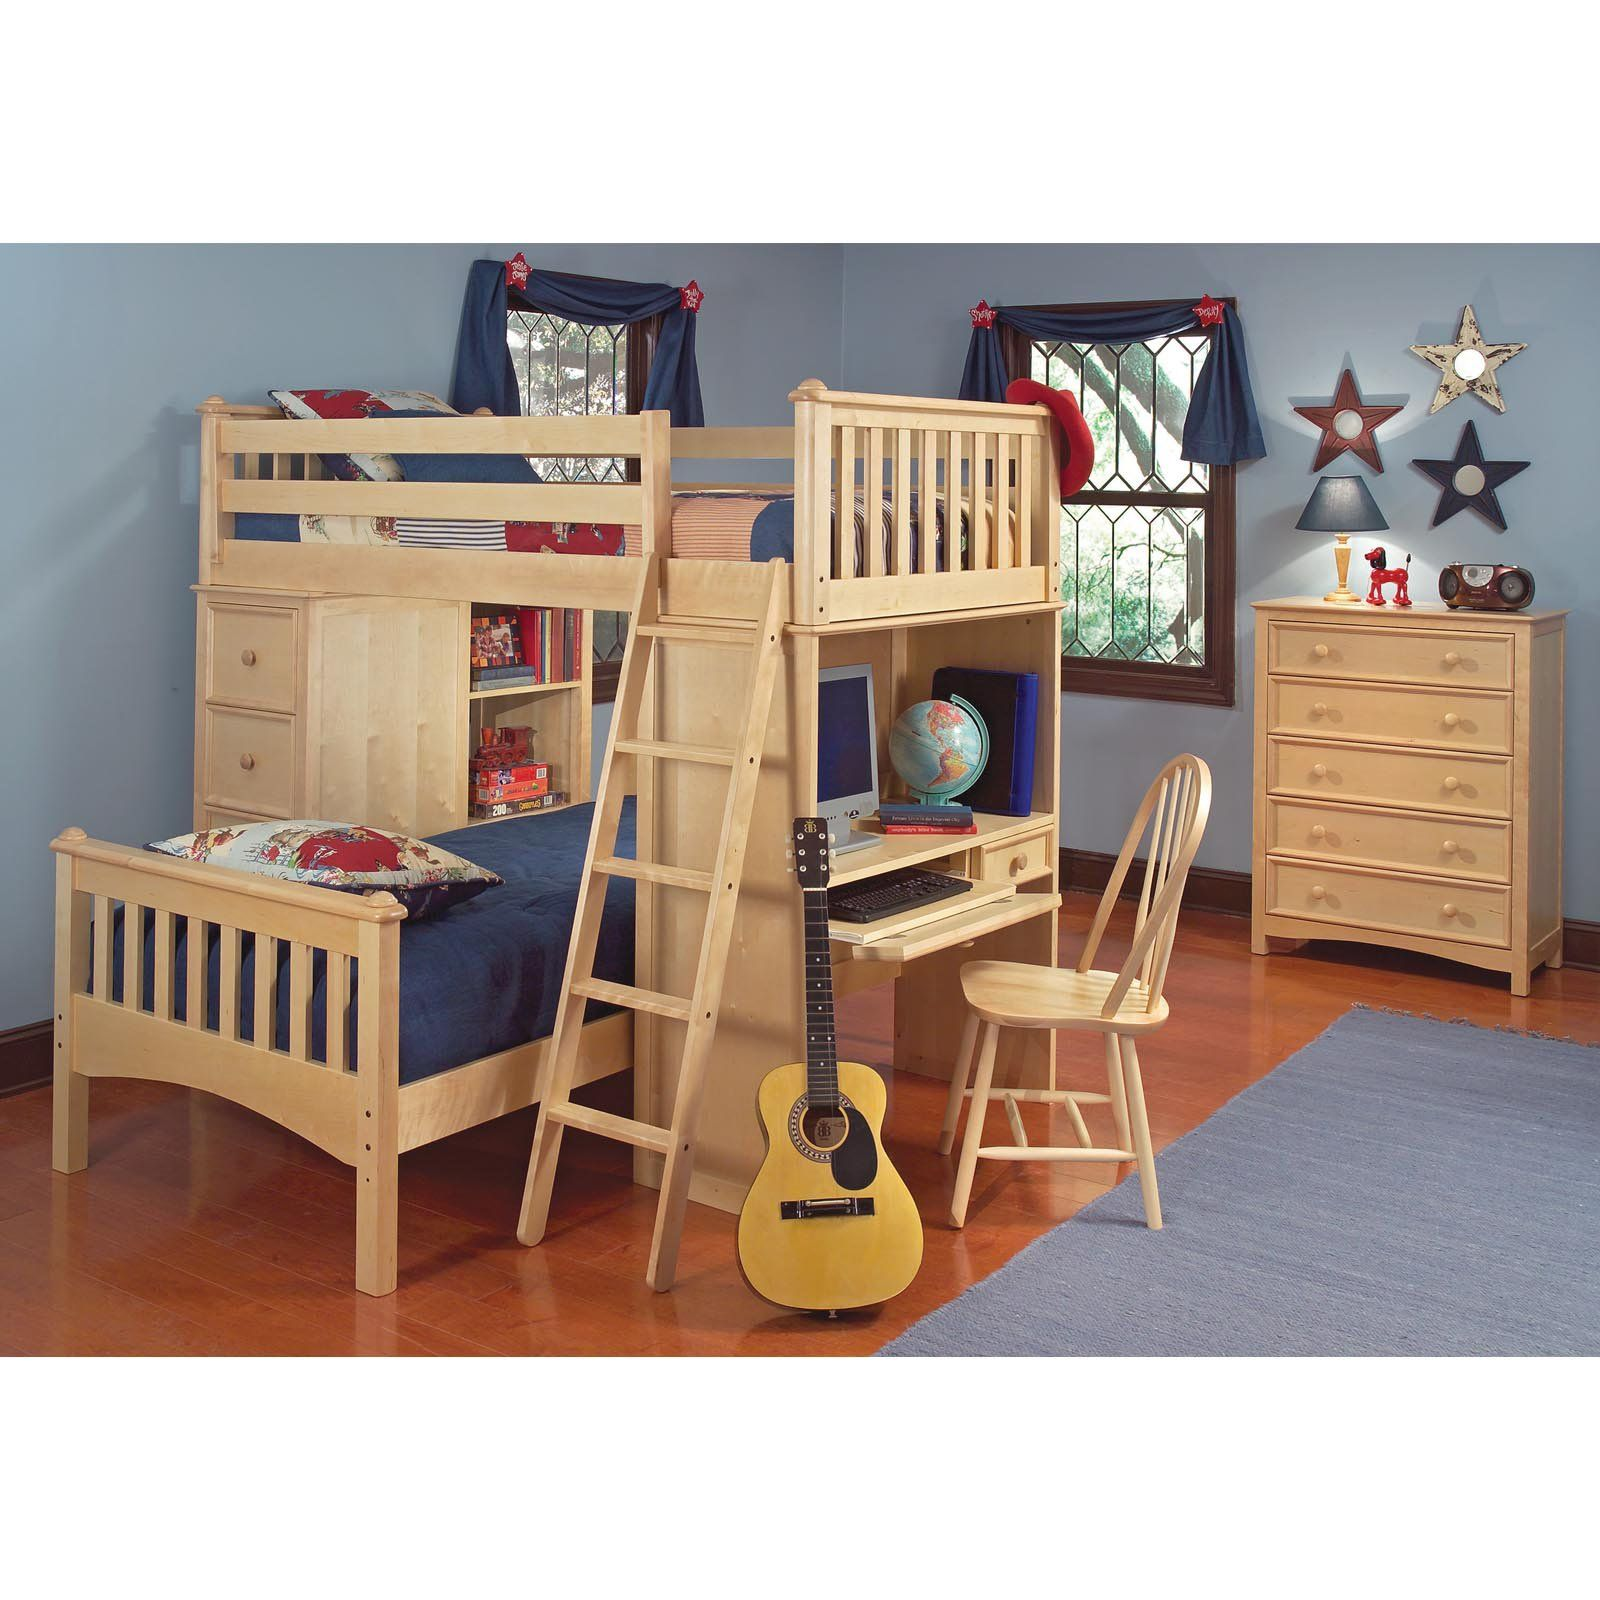 Twin bed loft bed  Cooley SSS Twin Loft Bed   from hayneedle  loft bed designs